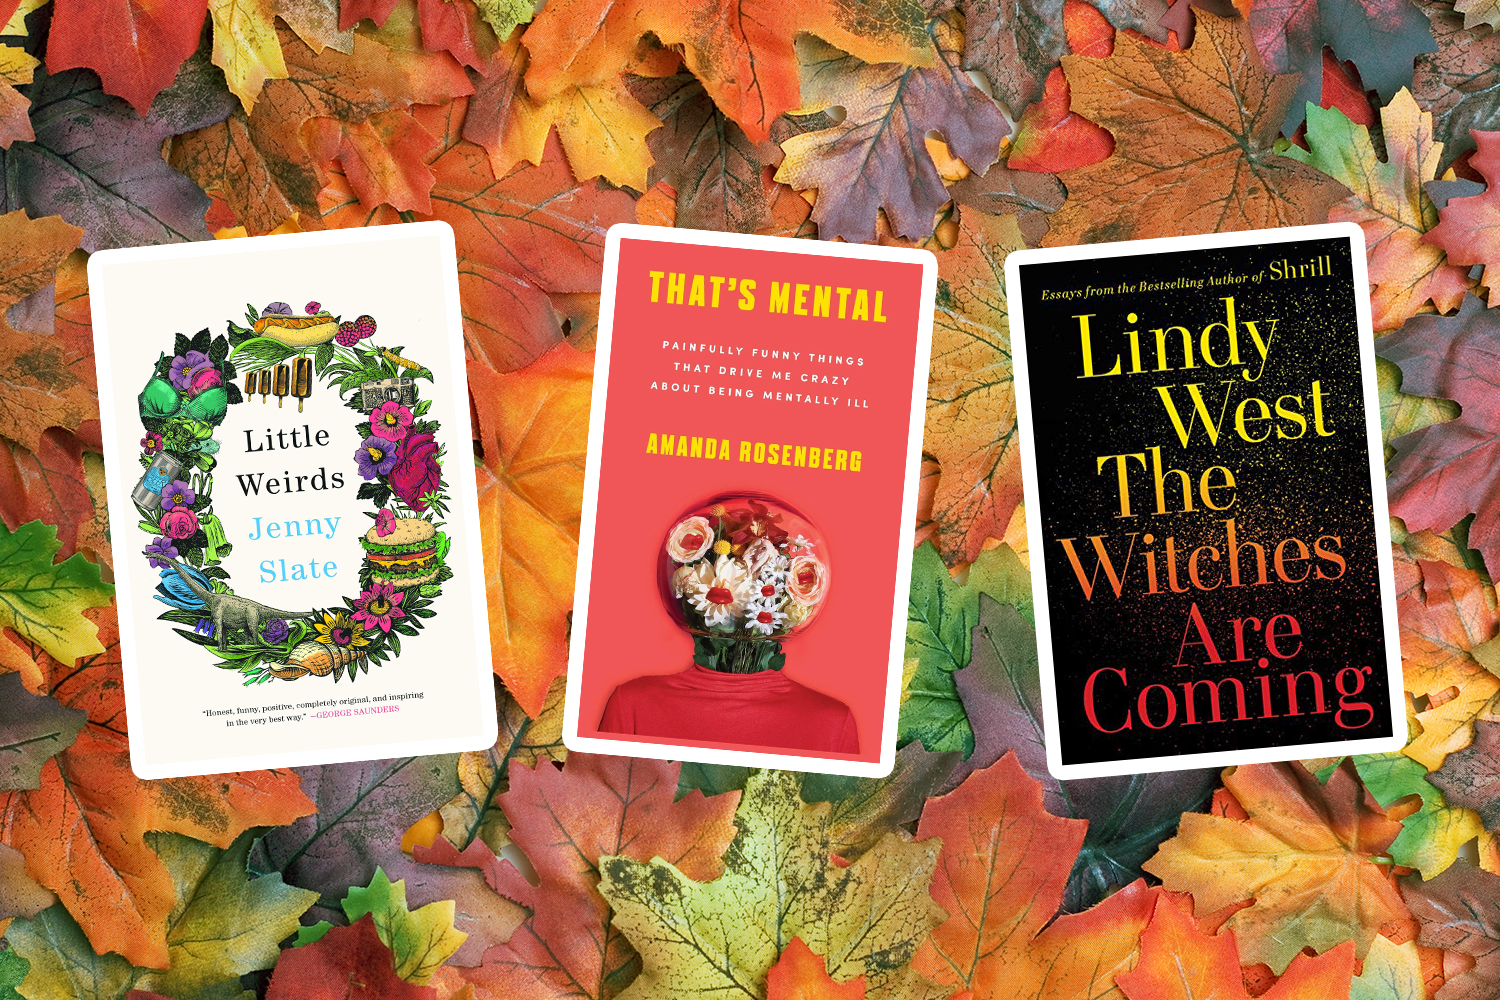 3 book covers against a pile of leaves